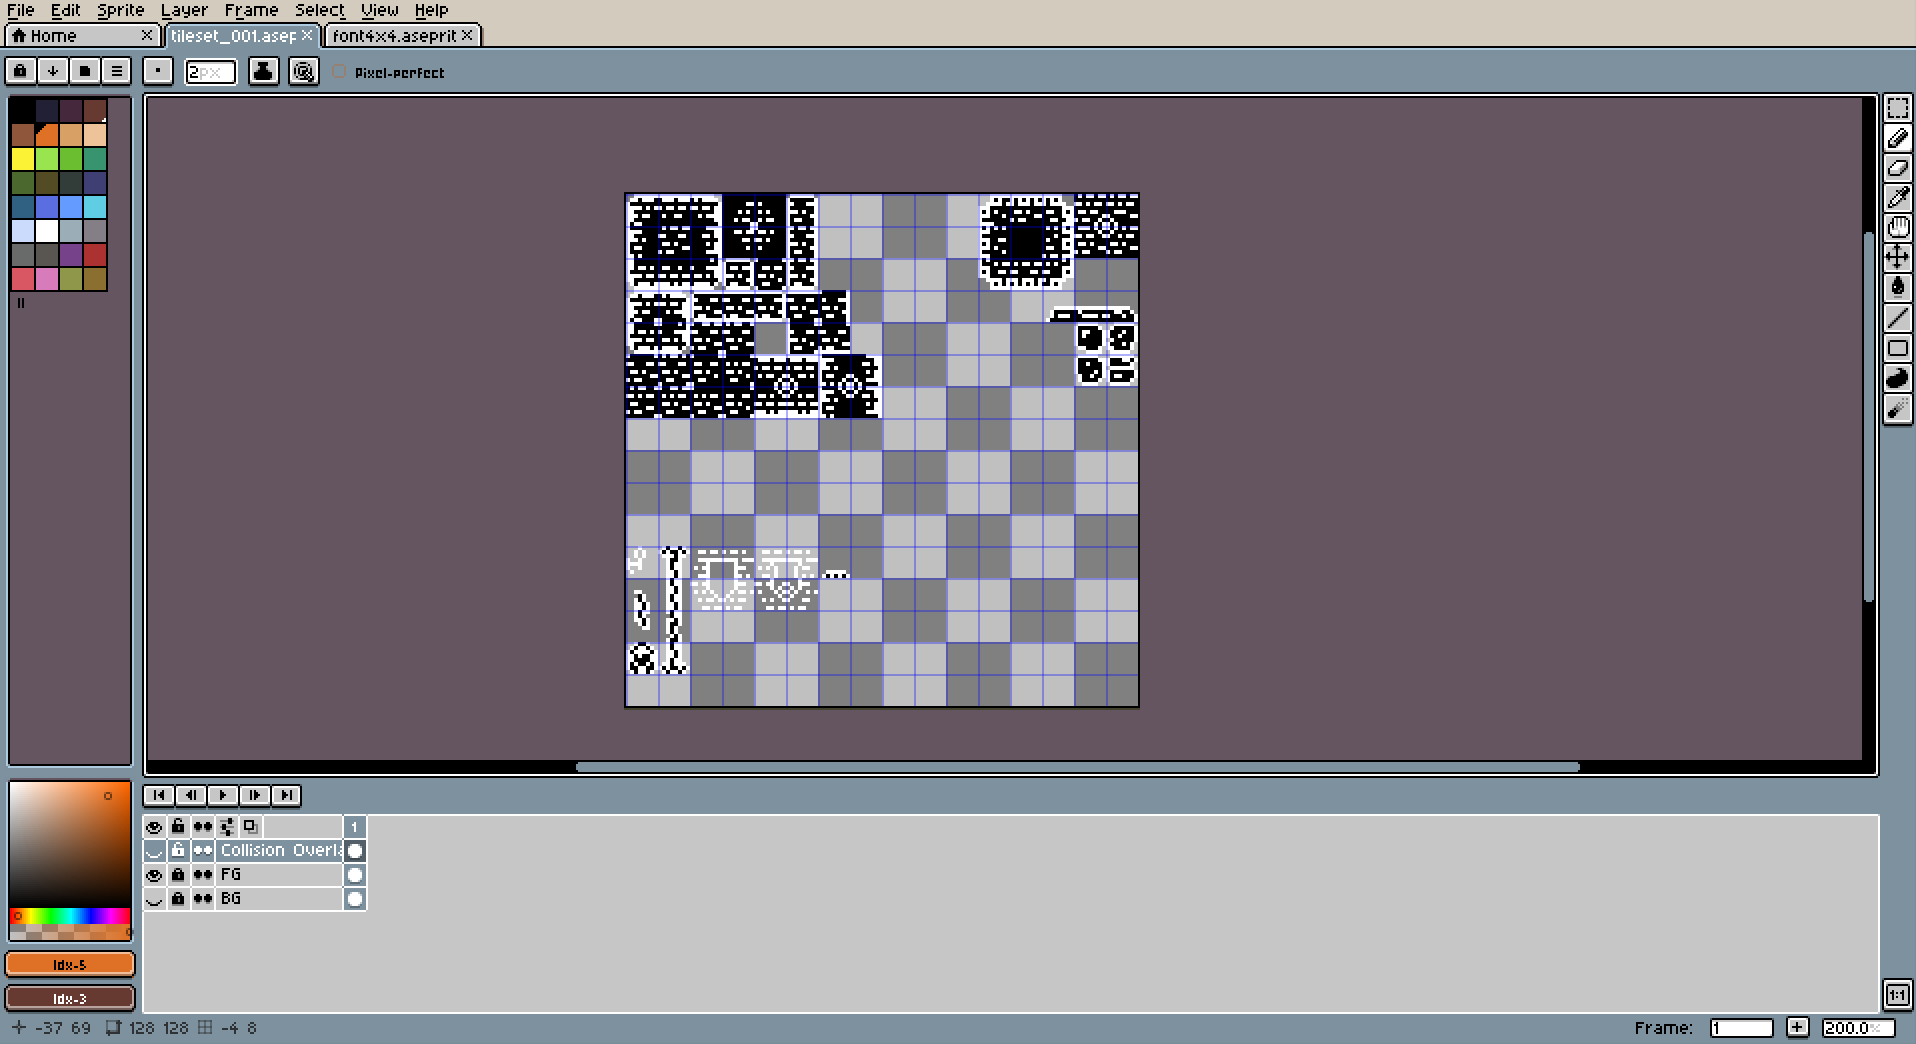 Black and white tileset. Still very much a work in progress, but the stuff in the upper left corner is pretty much locked in.